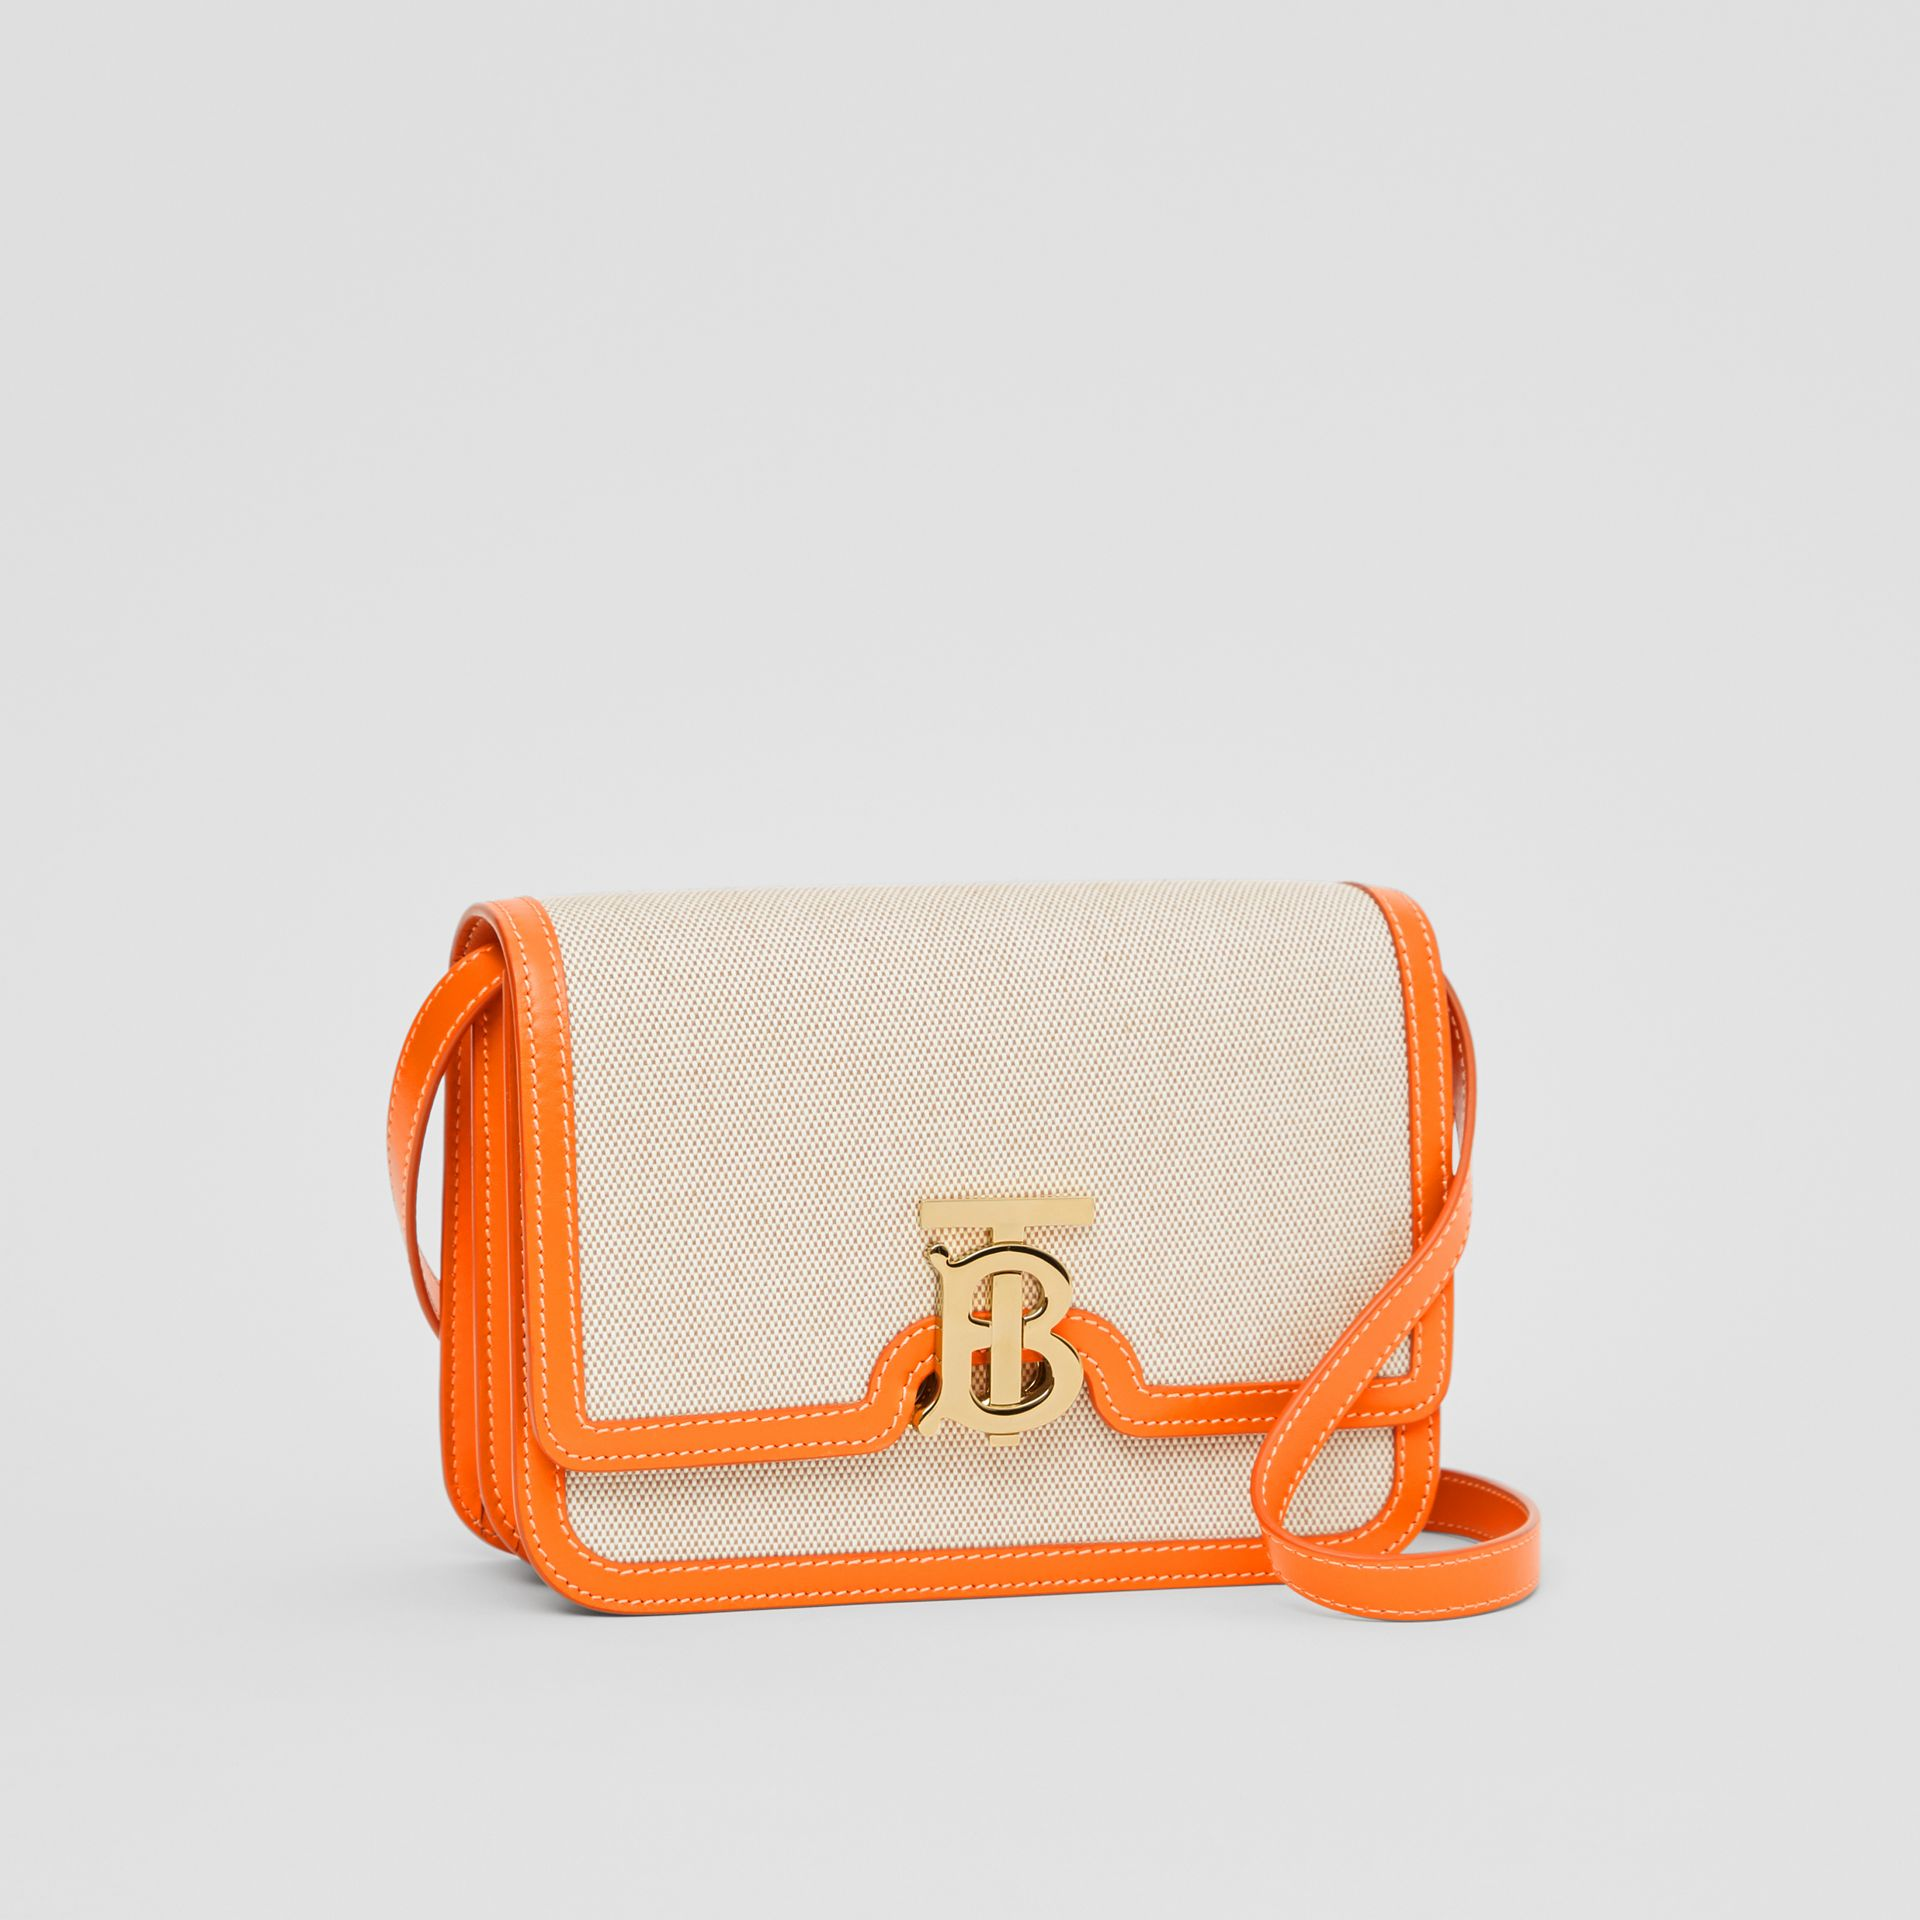 Small Two-tone Canvas and Leather TB Bag in Orange - Women | Burberry Australia - gallery image 4